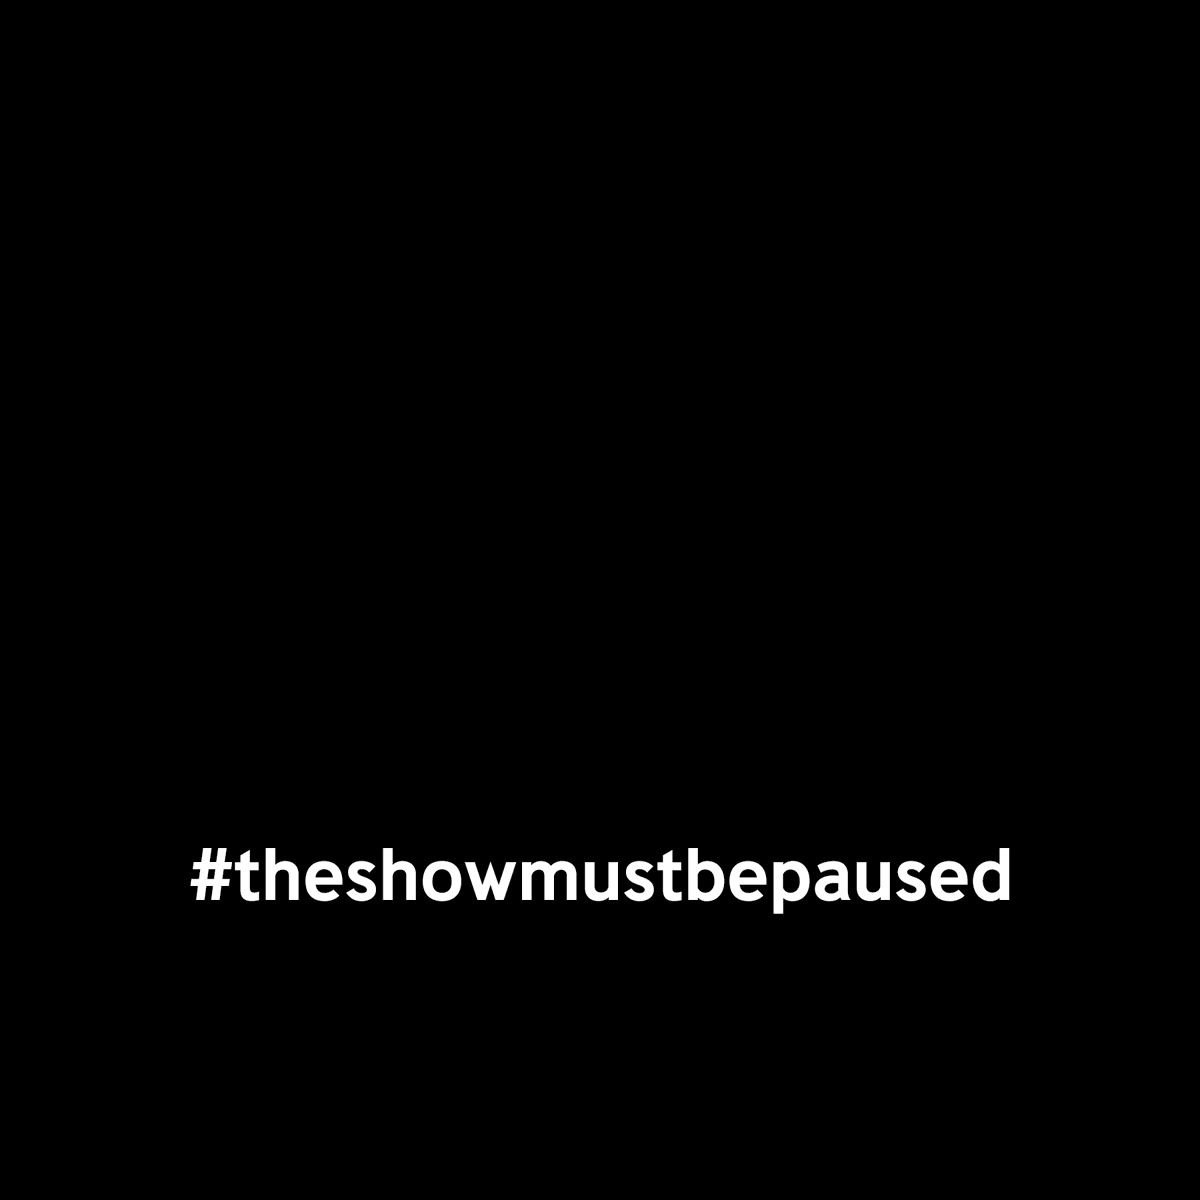 #TheShowMustBePaused  @pausetheshow https://t.co/skOKEecZap